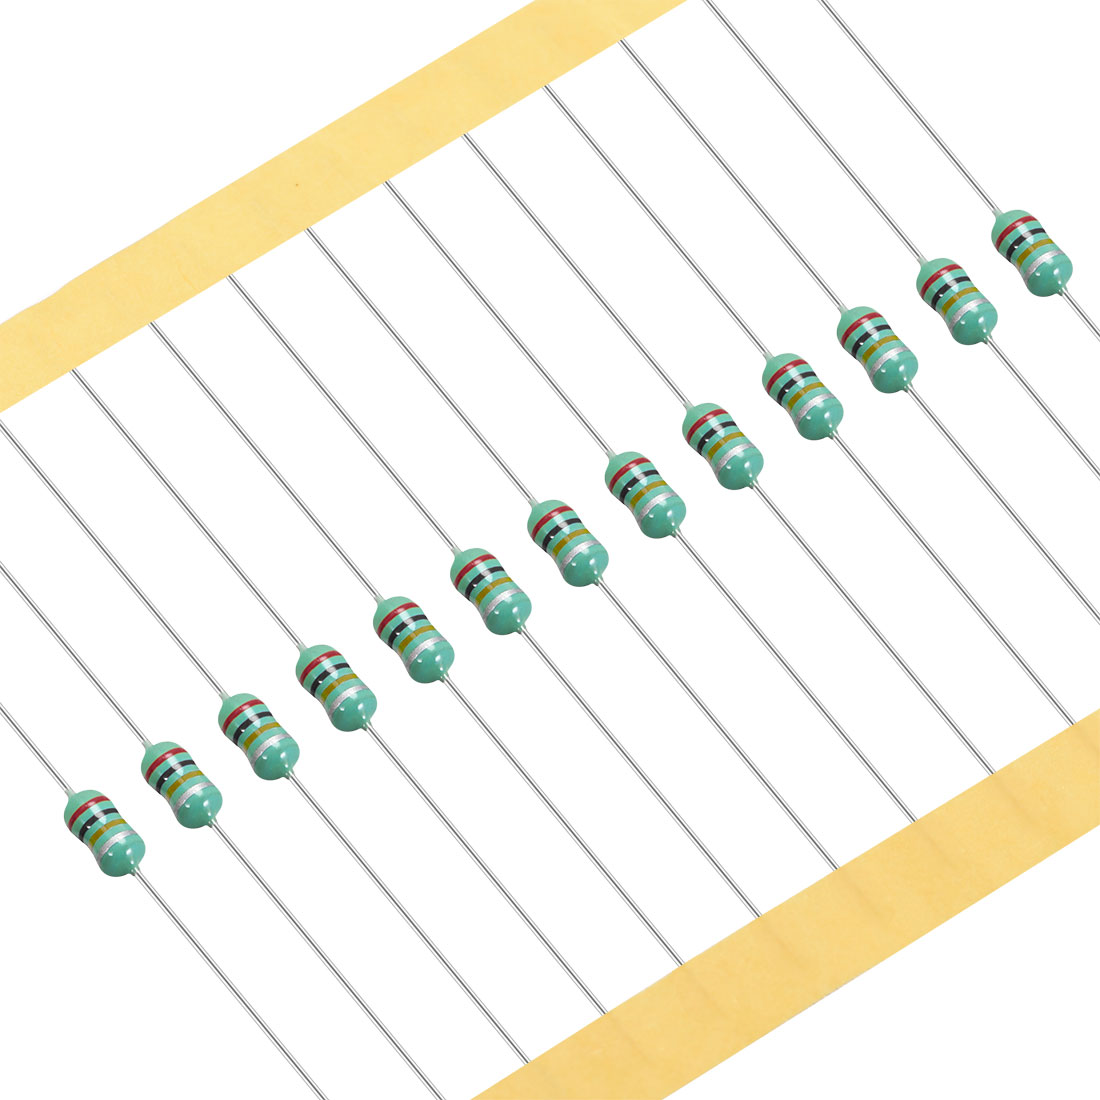 25Pcs 0307 Color Ring Inductor 1uH 0.5W Axial RF Choke Coil Inductor